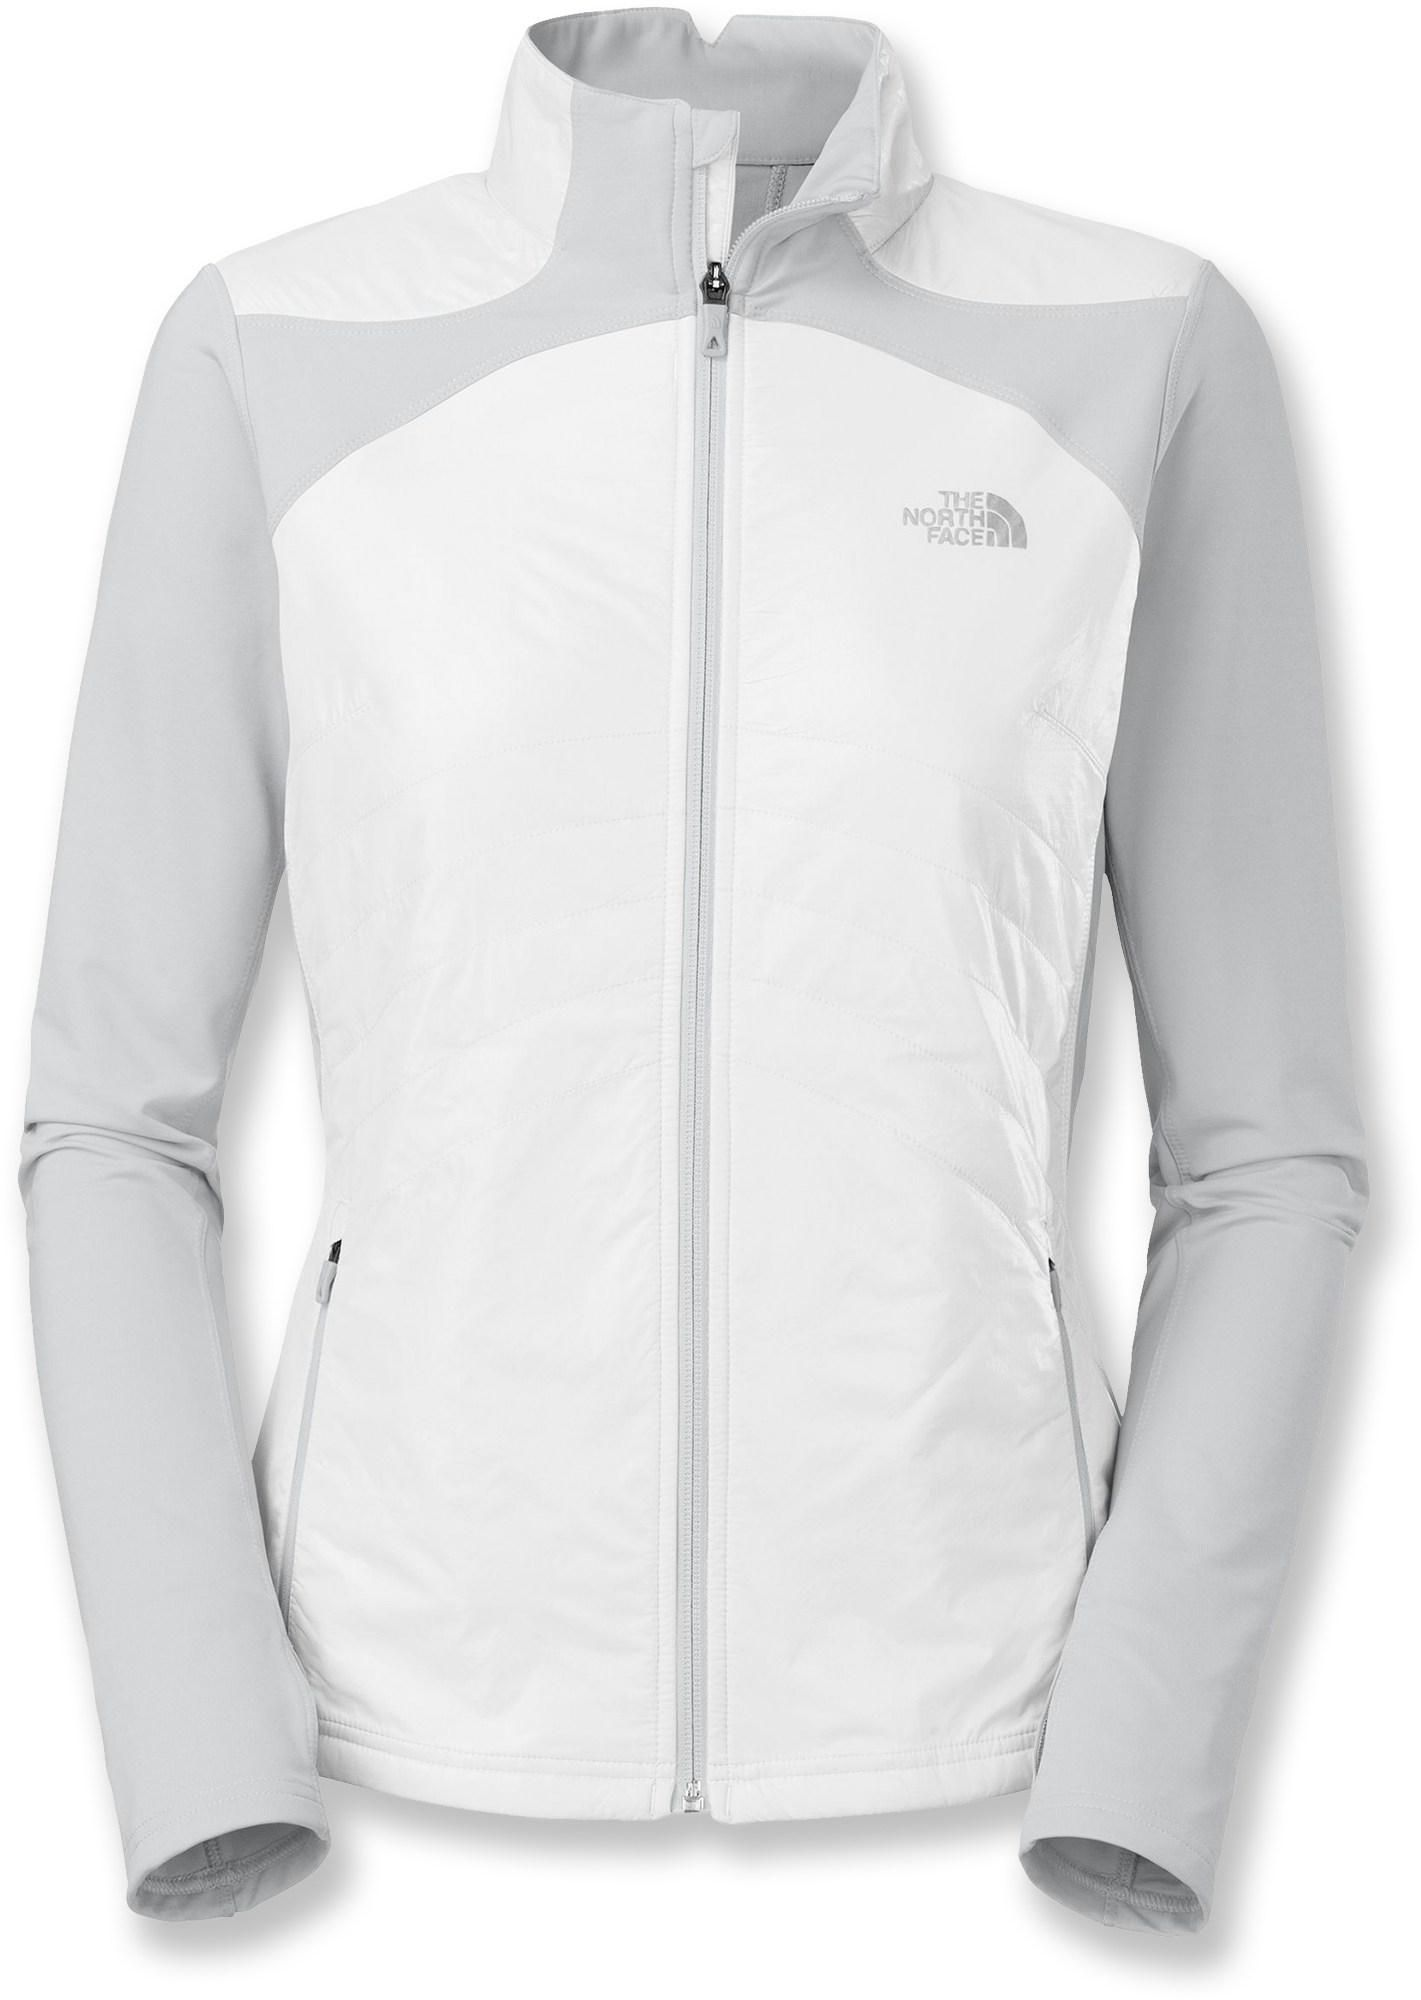 3ba31c686 The North Face Animagi Jacket - Women's. | Gifts for Her | North ...